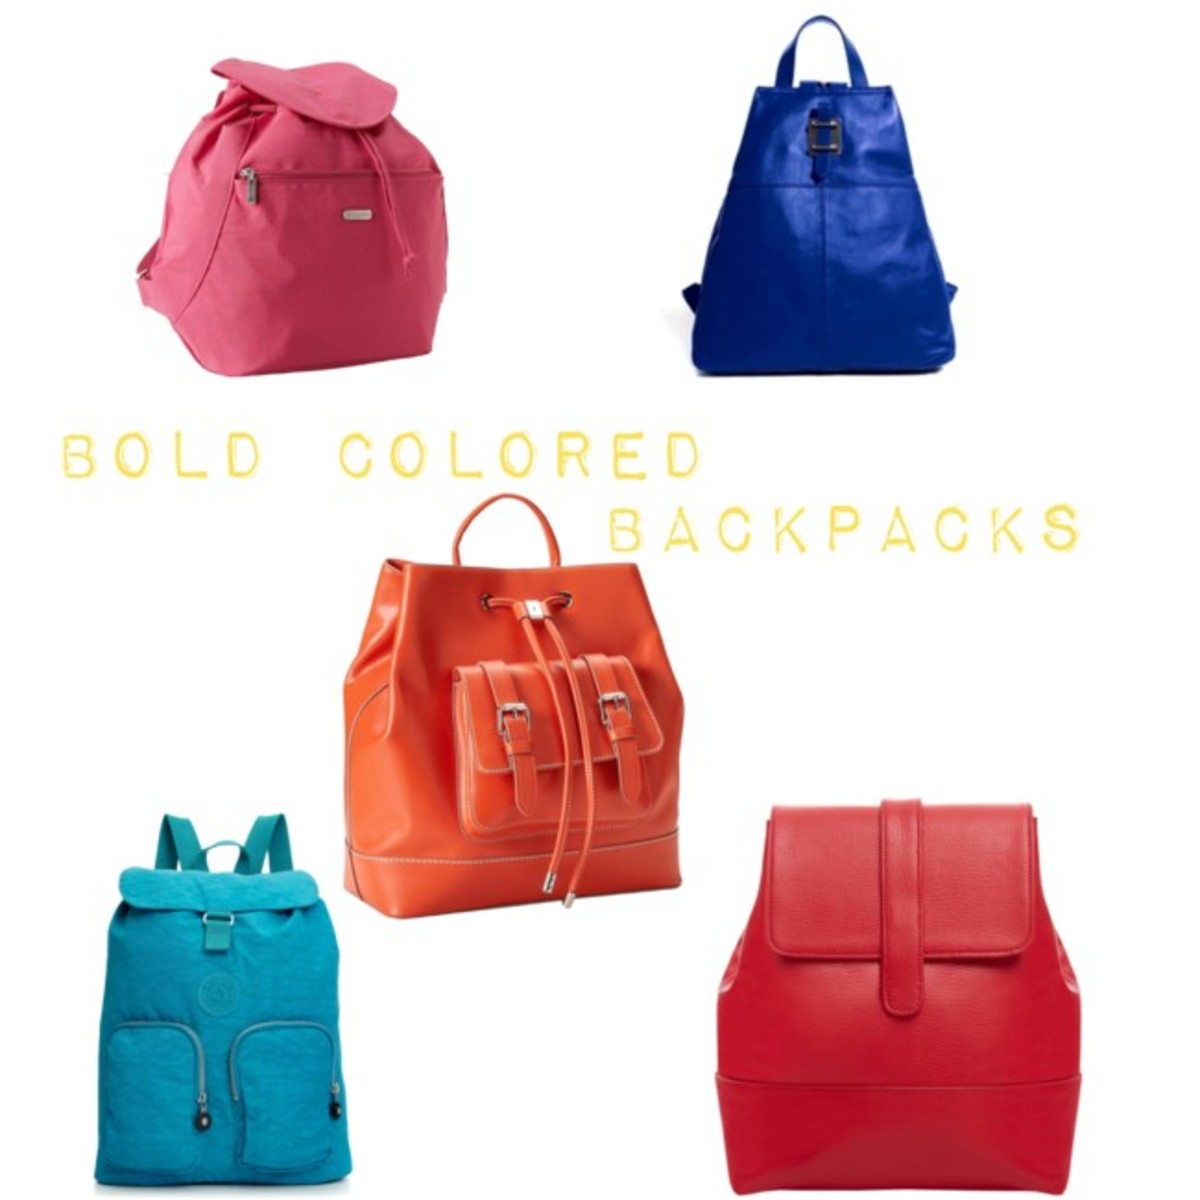 colored backpacks